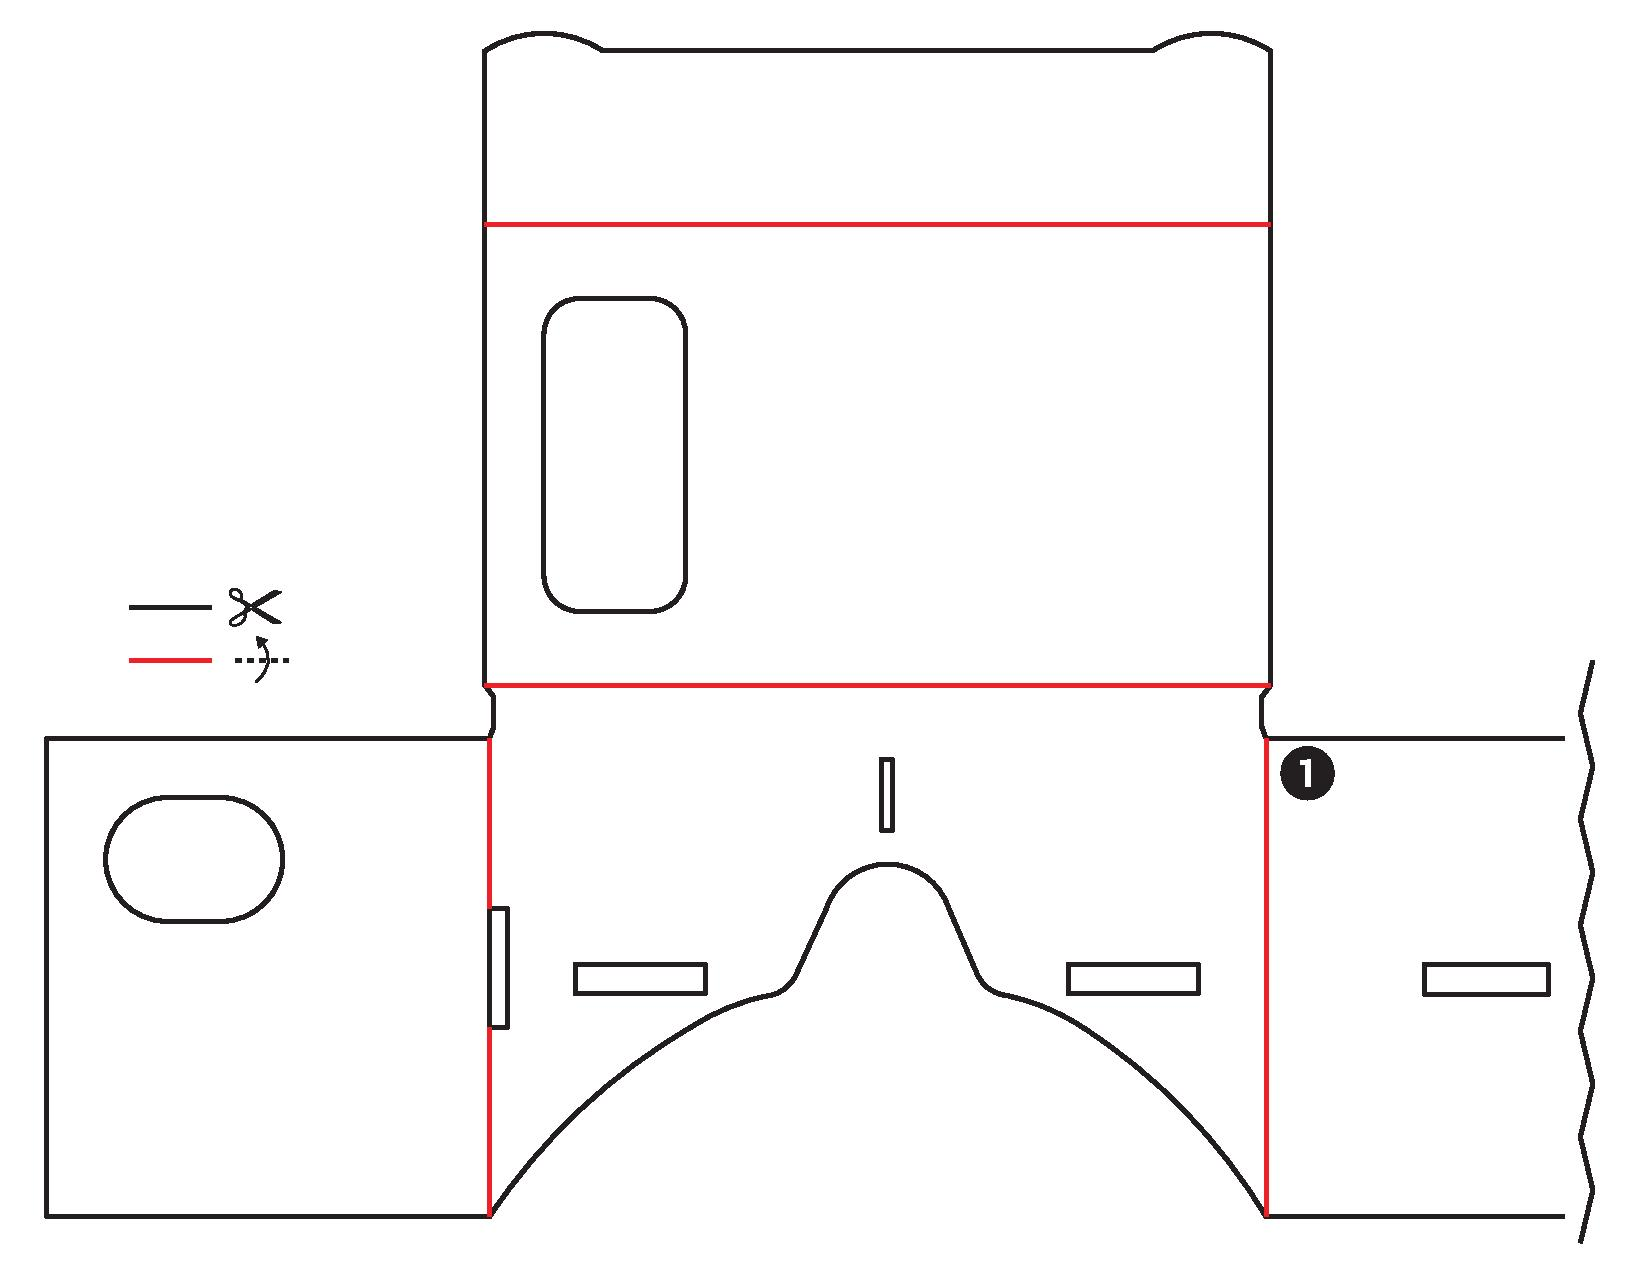 File:Google cardboard instruction2.jpg - Virtual Reality and Augmented Reality Wiki - VR & AR Wiki